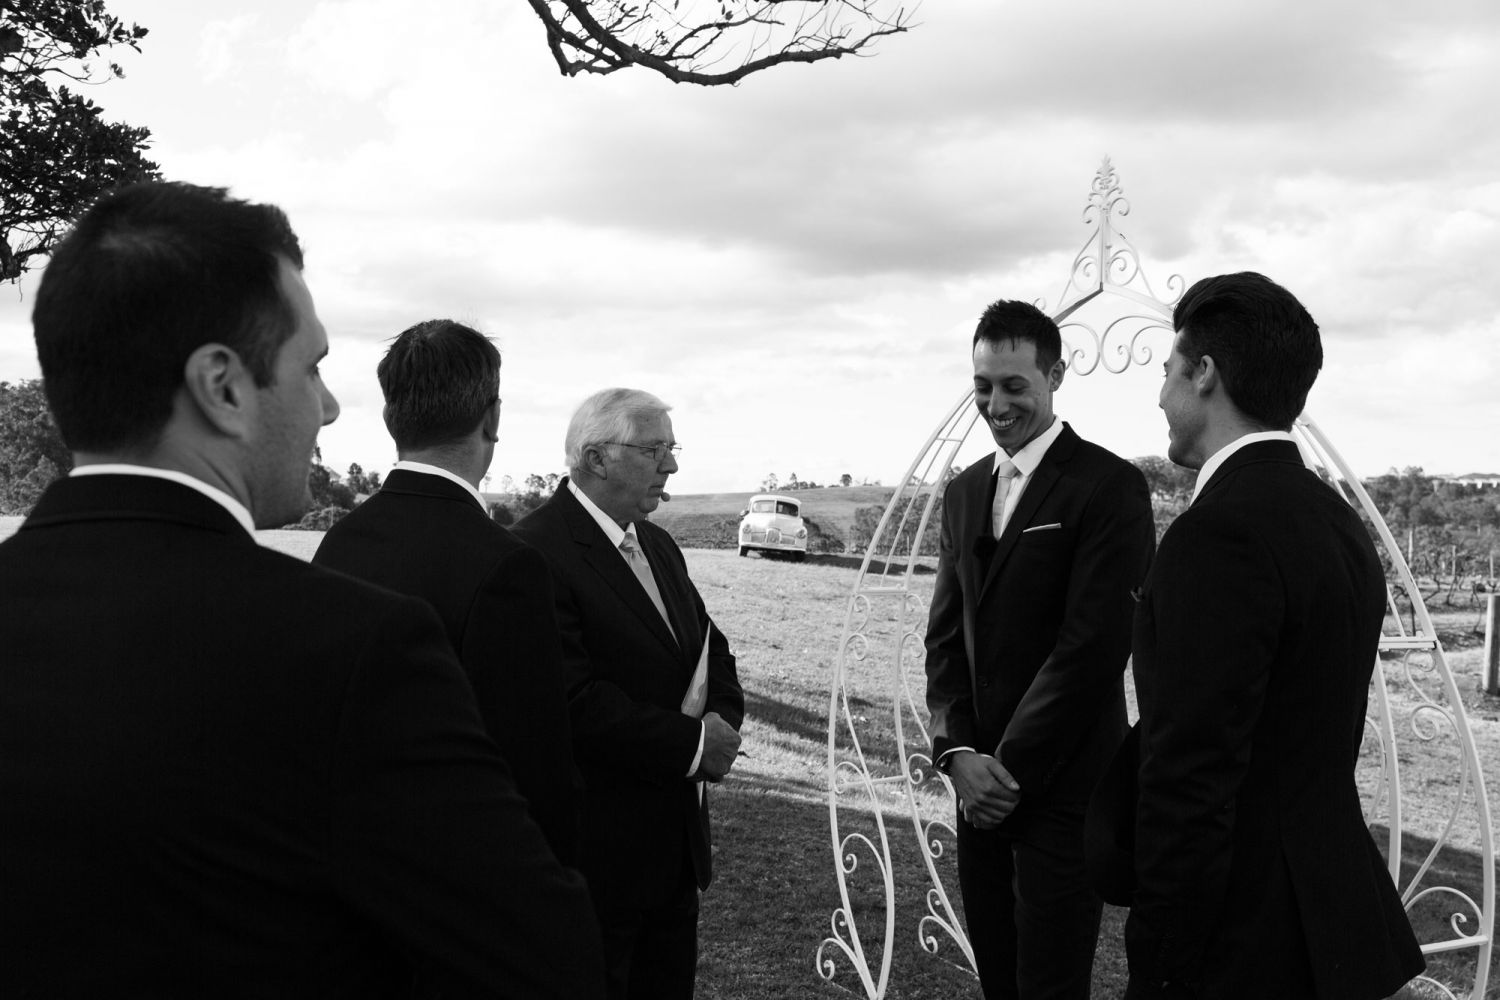 4_wedding-photographer-captures-groom-waiting-for-bride-at-lindemans-in-the-hunter-valley